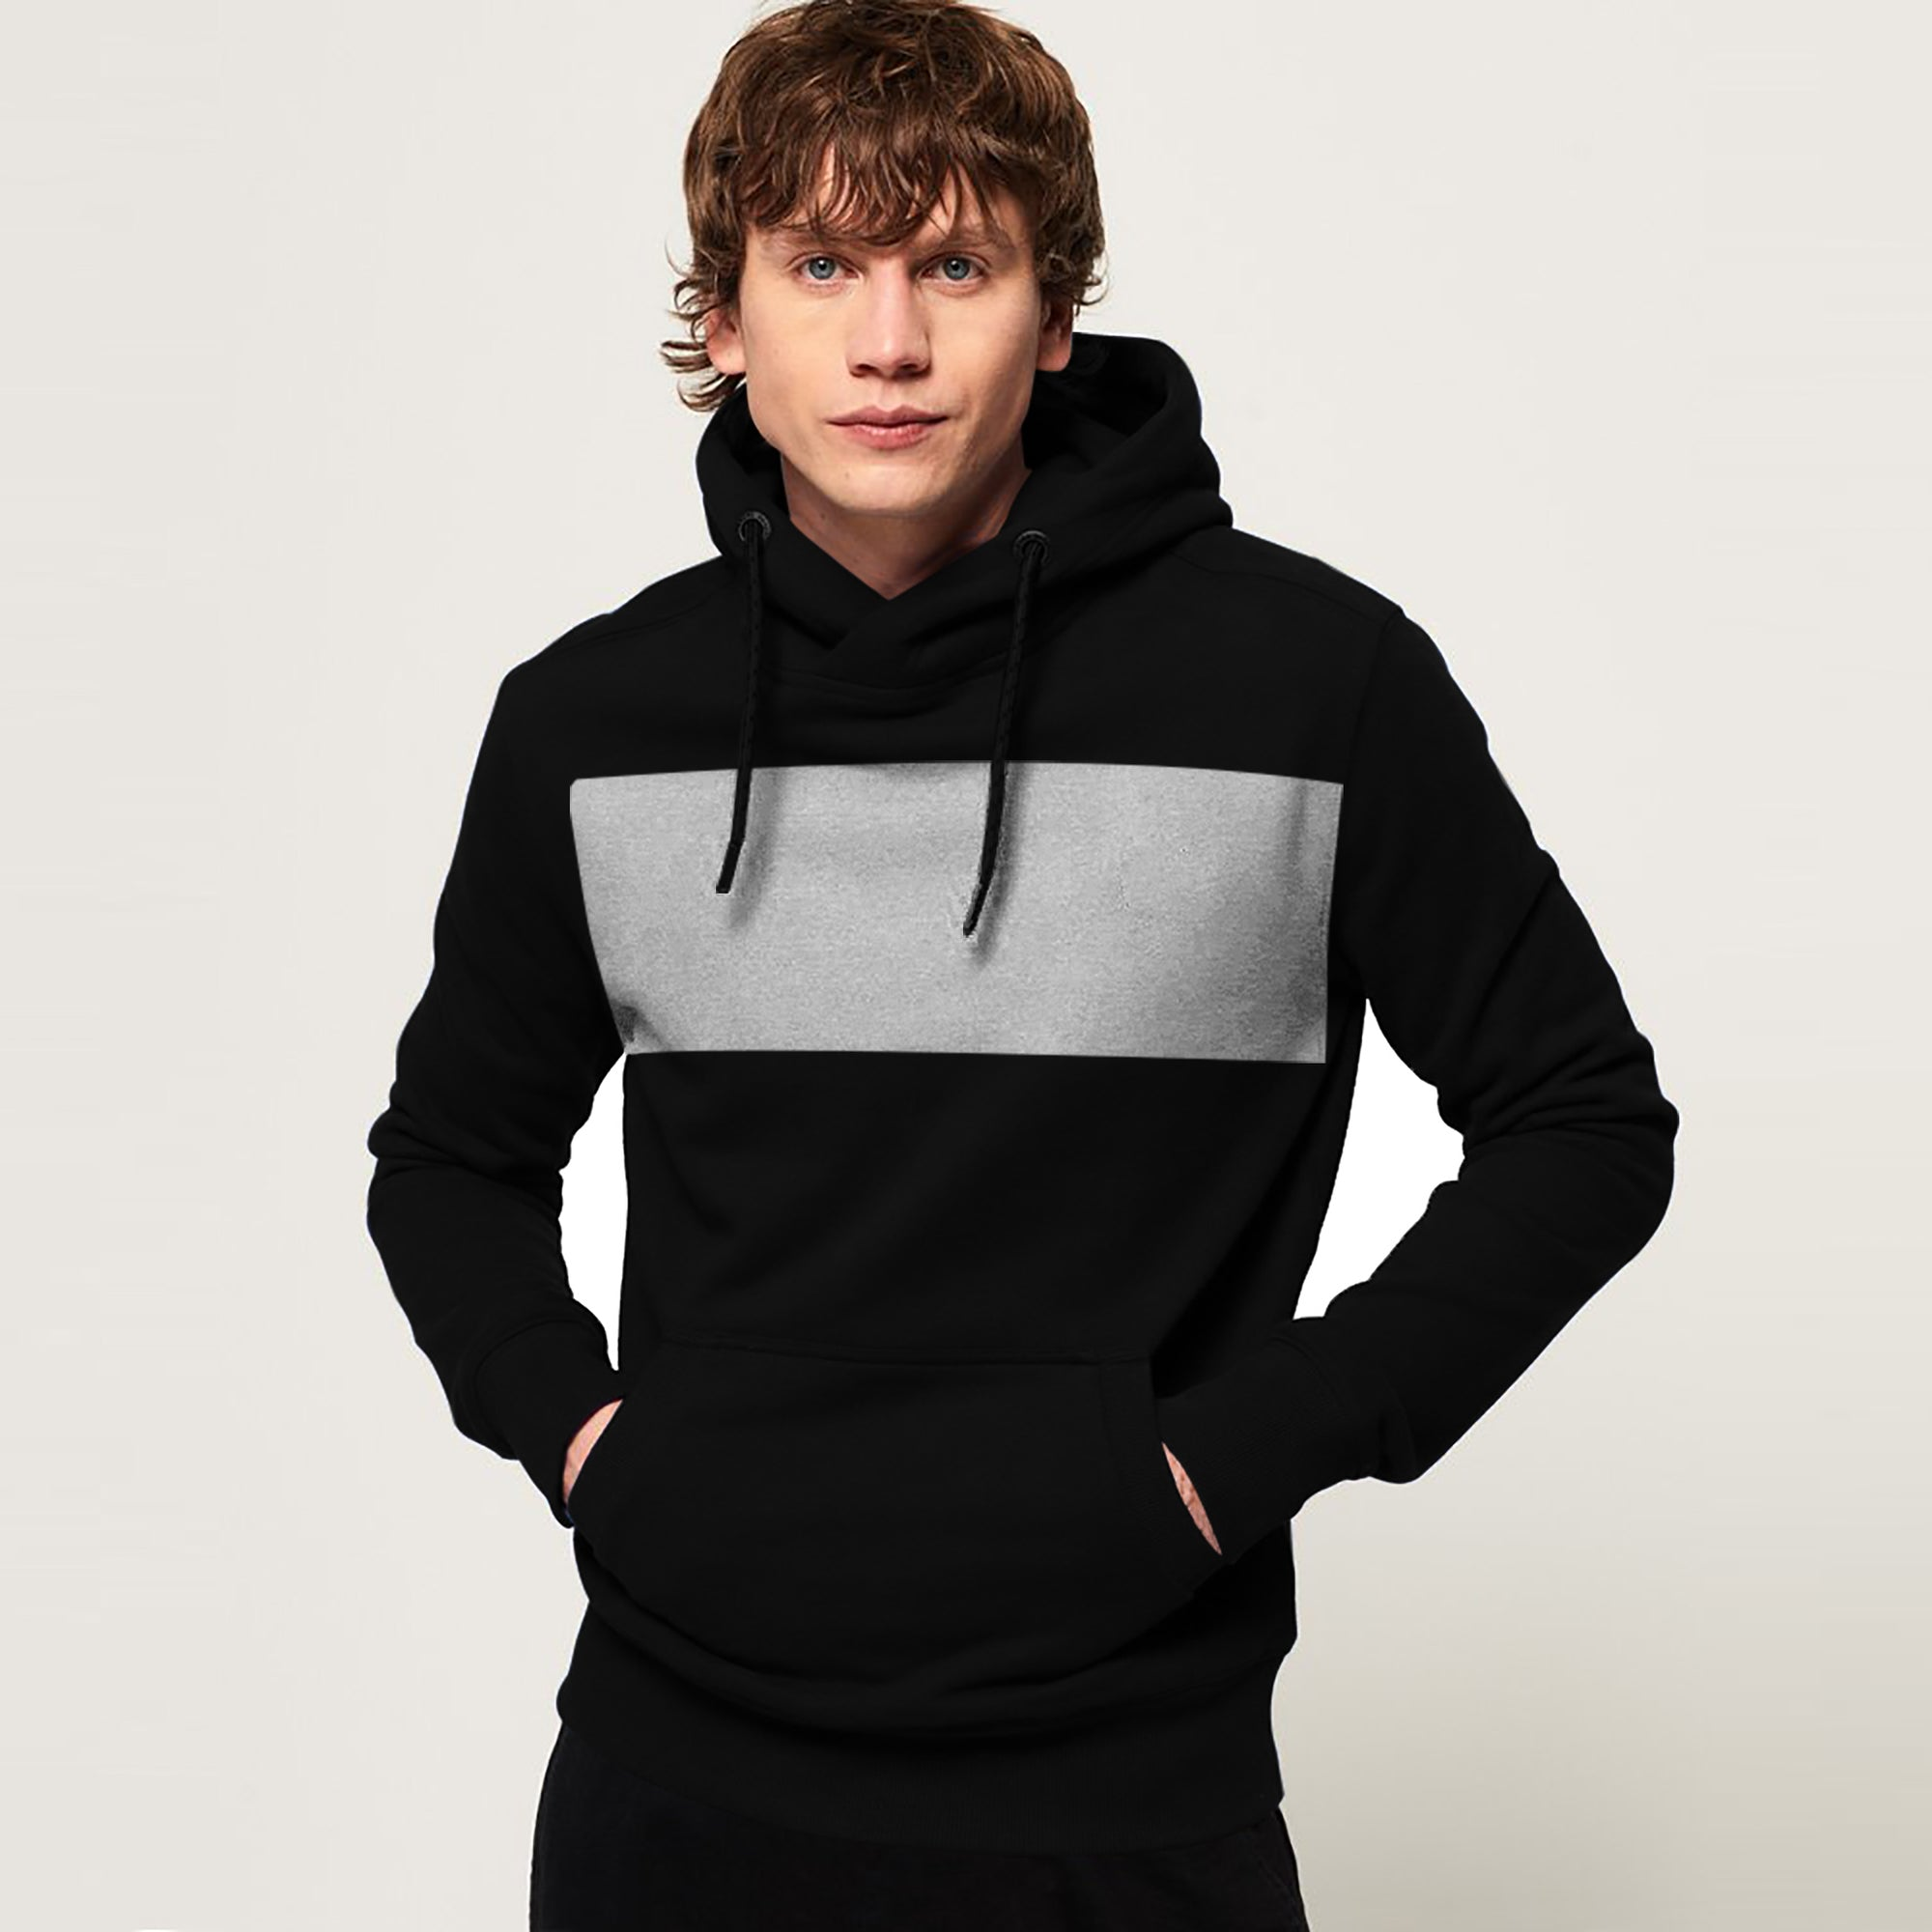 New Stylish Fleece Pullover Hoodie For Men-Black With Grey Panels-SP1654